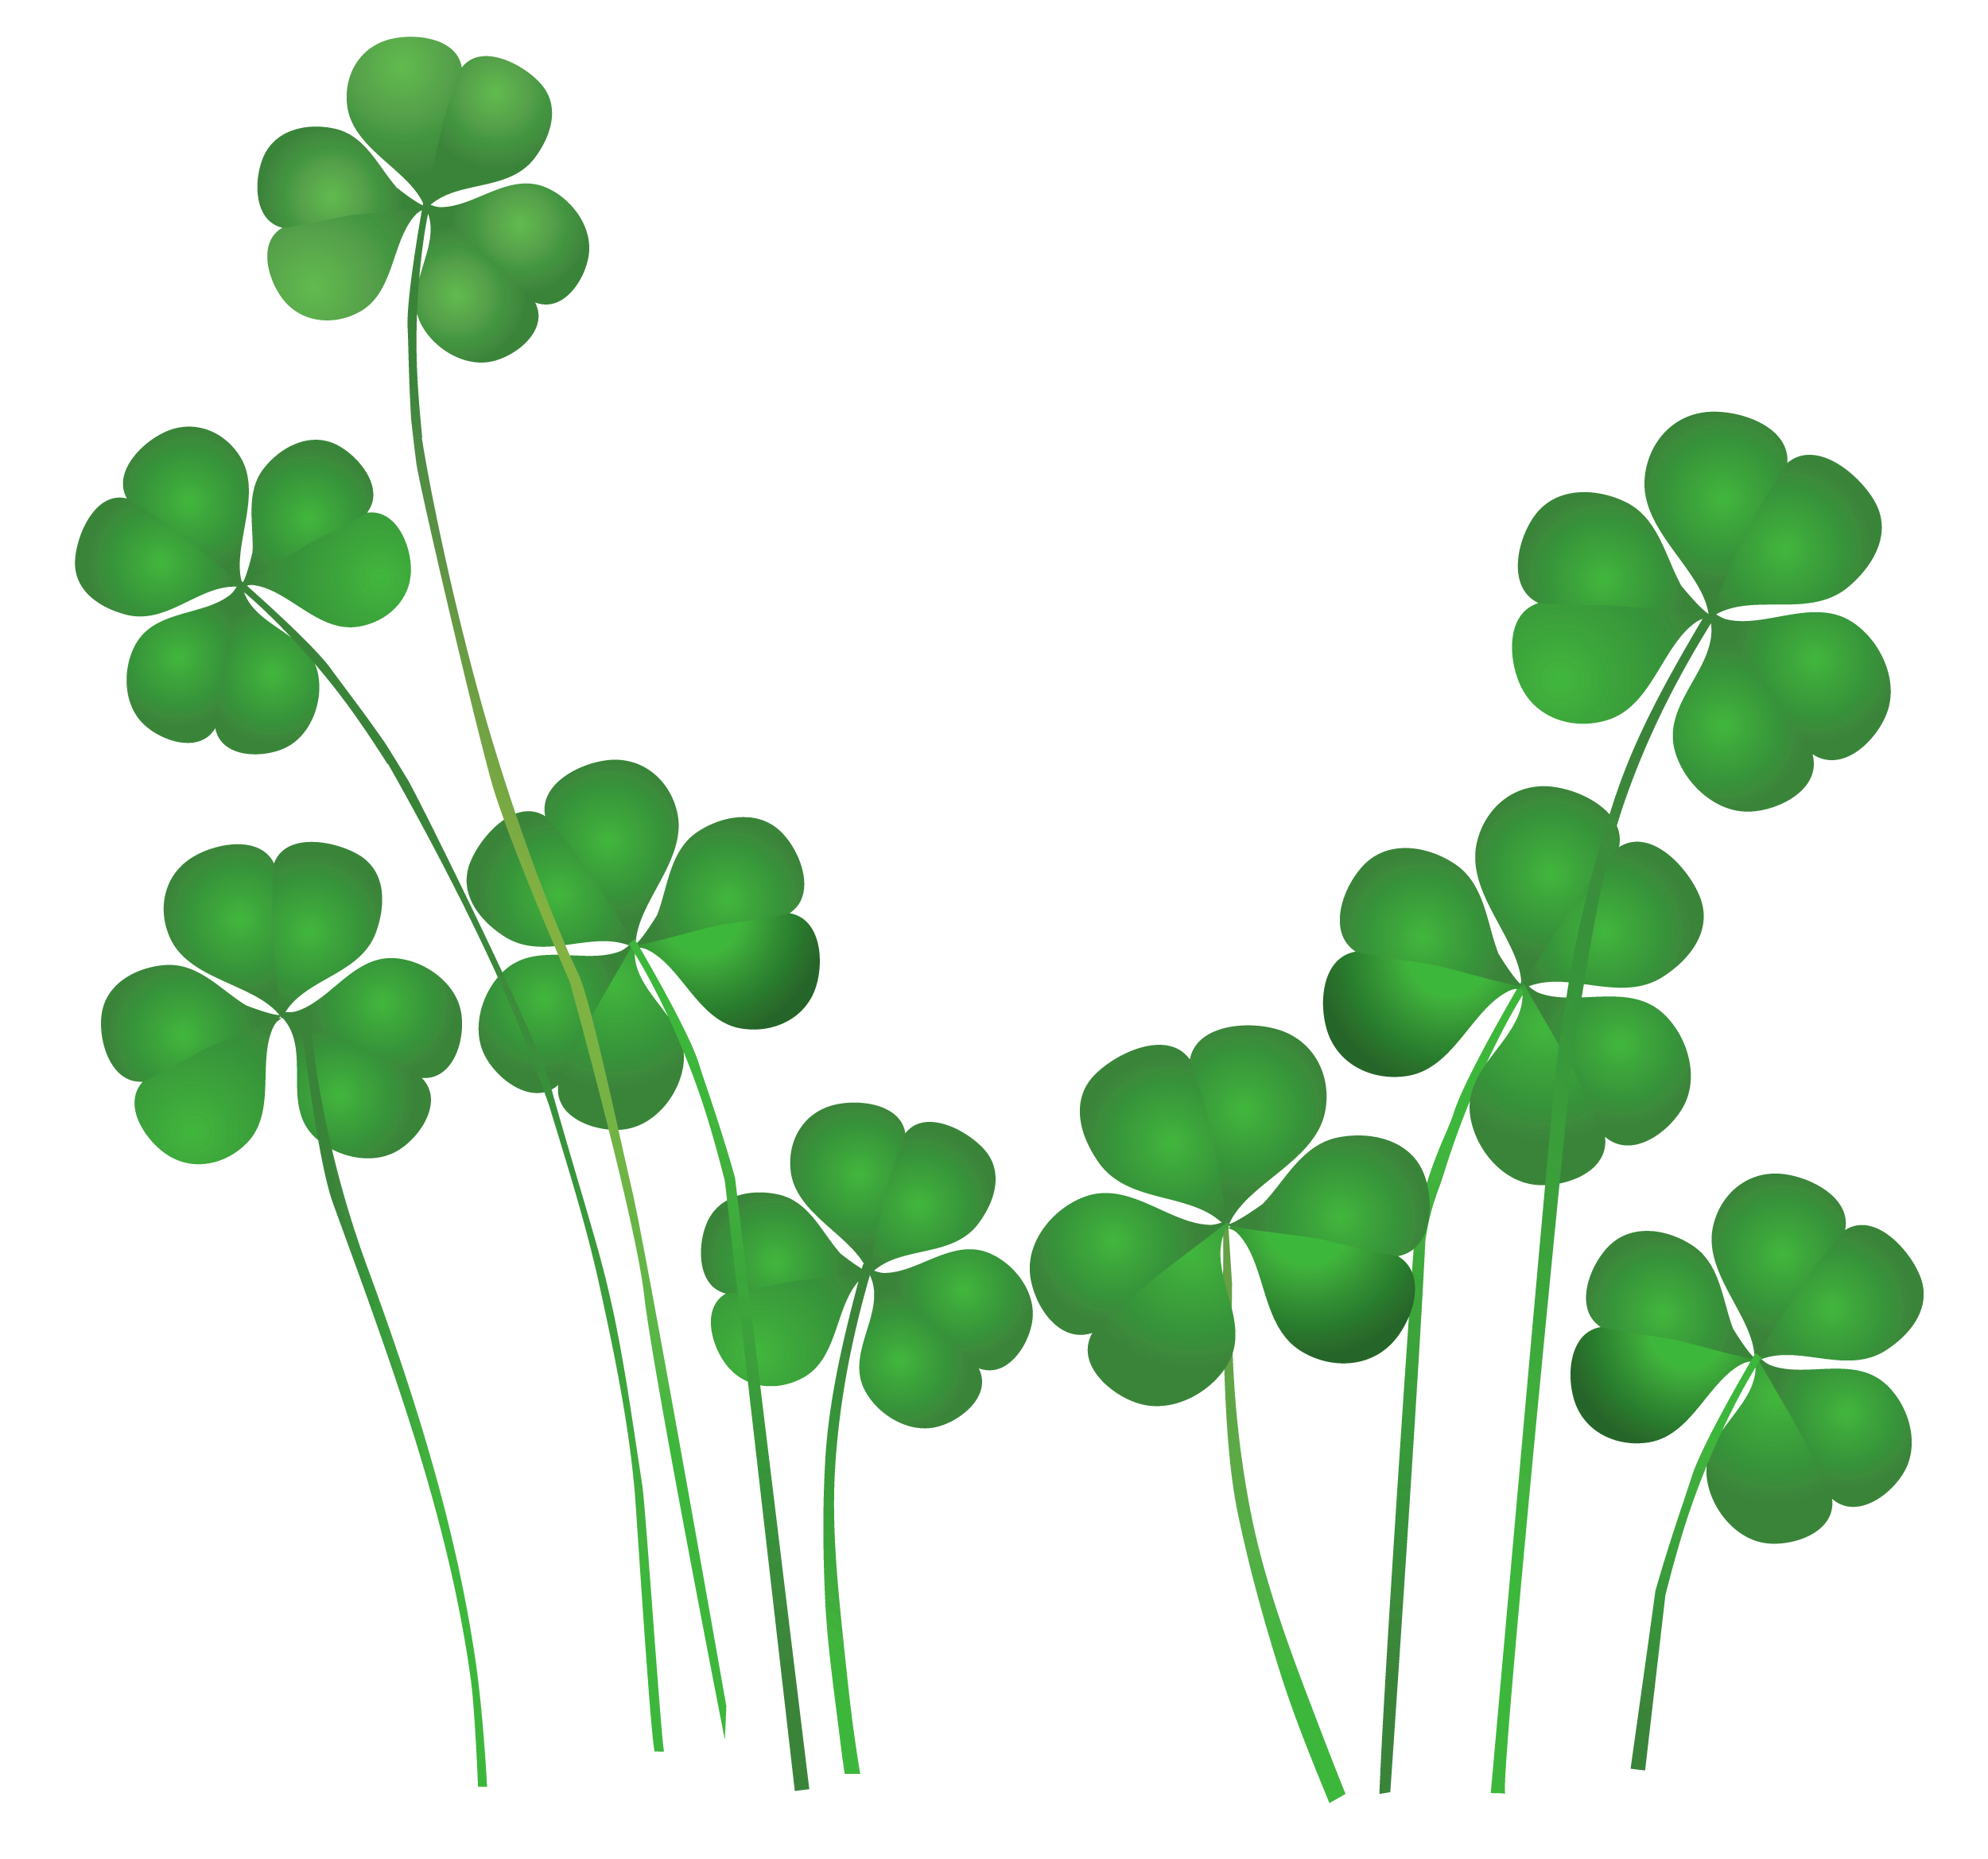 image black and white download St patrick s day. Shamrock clipart